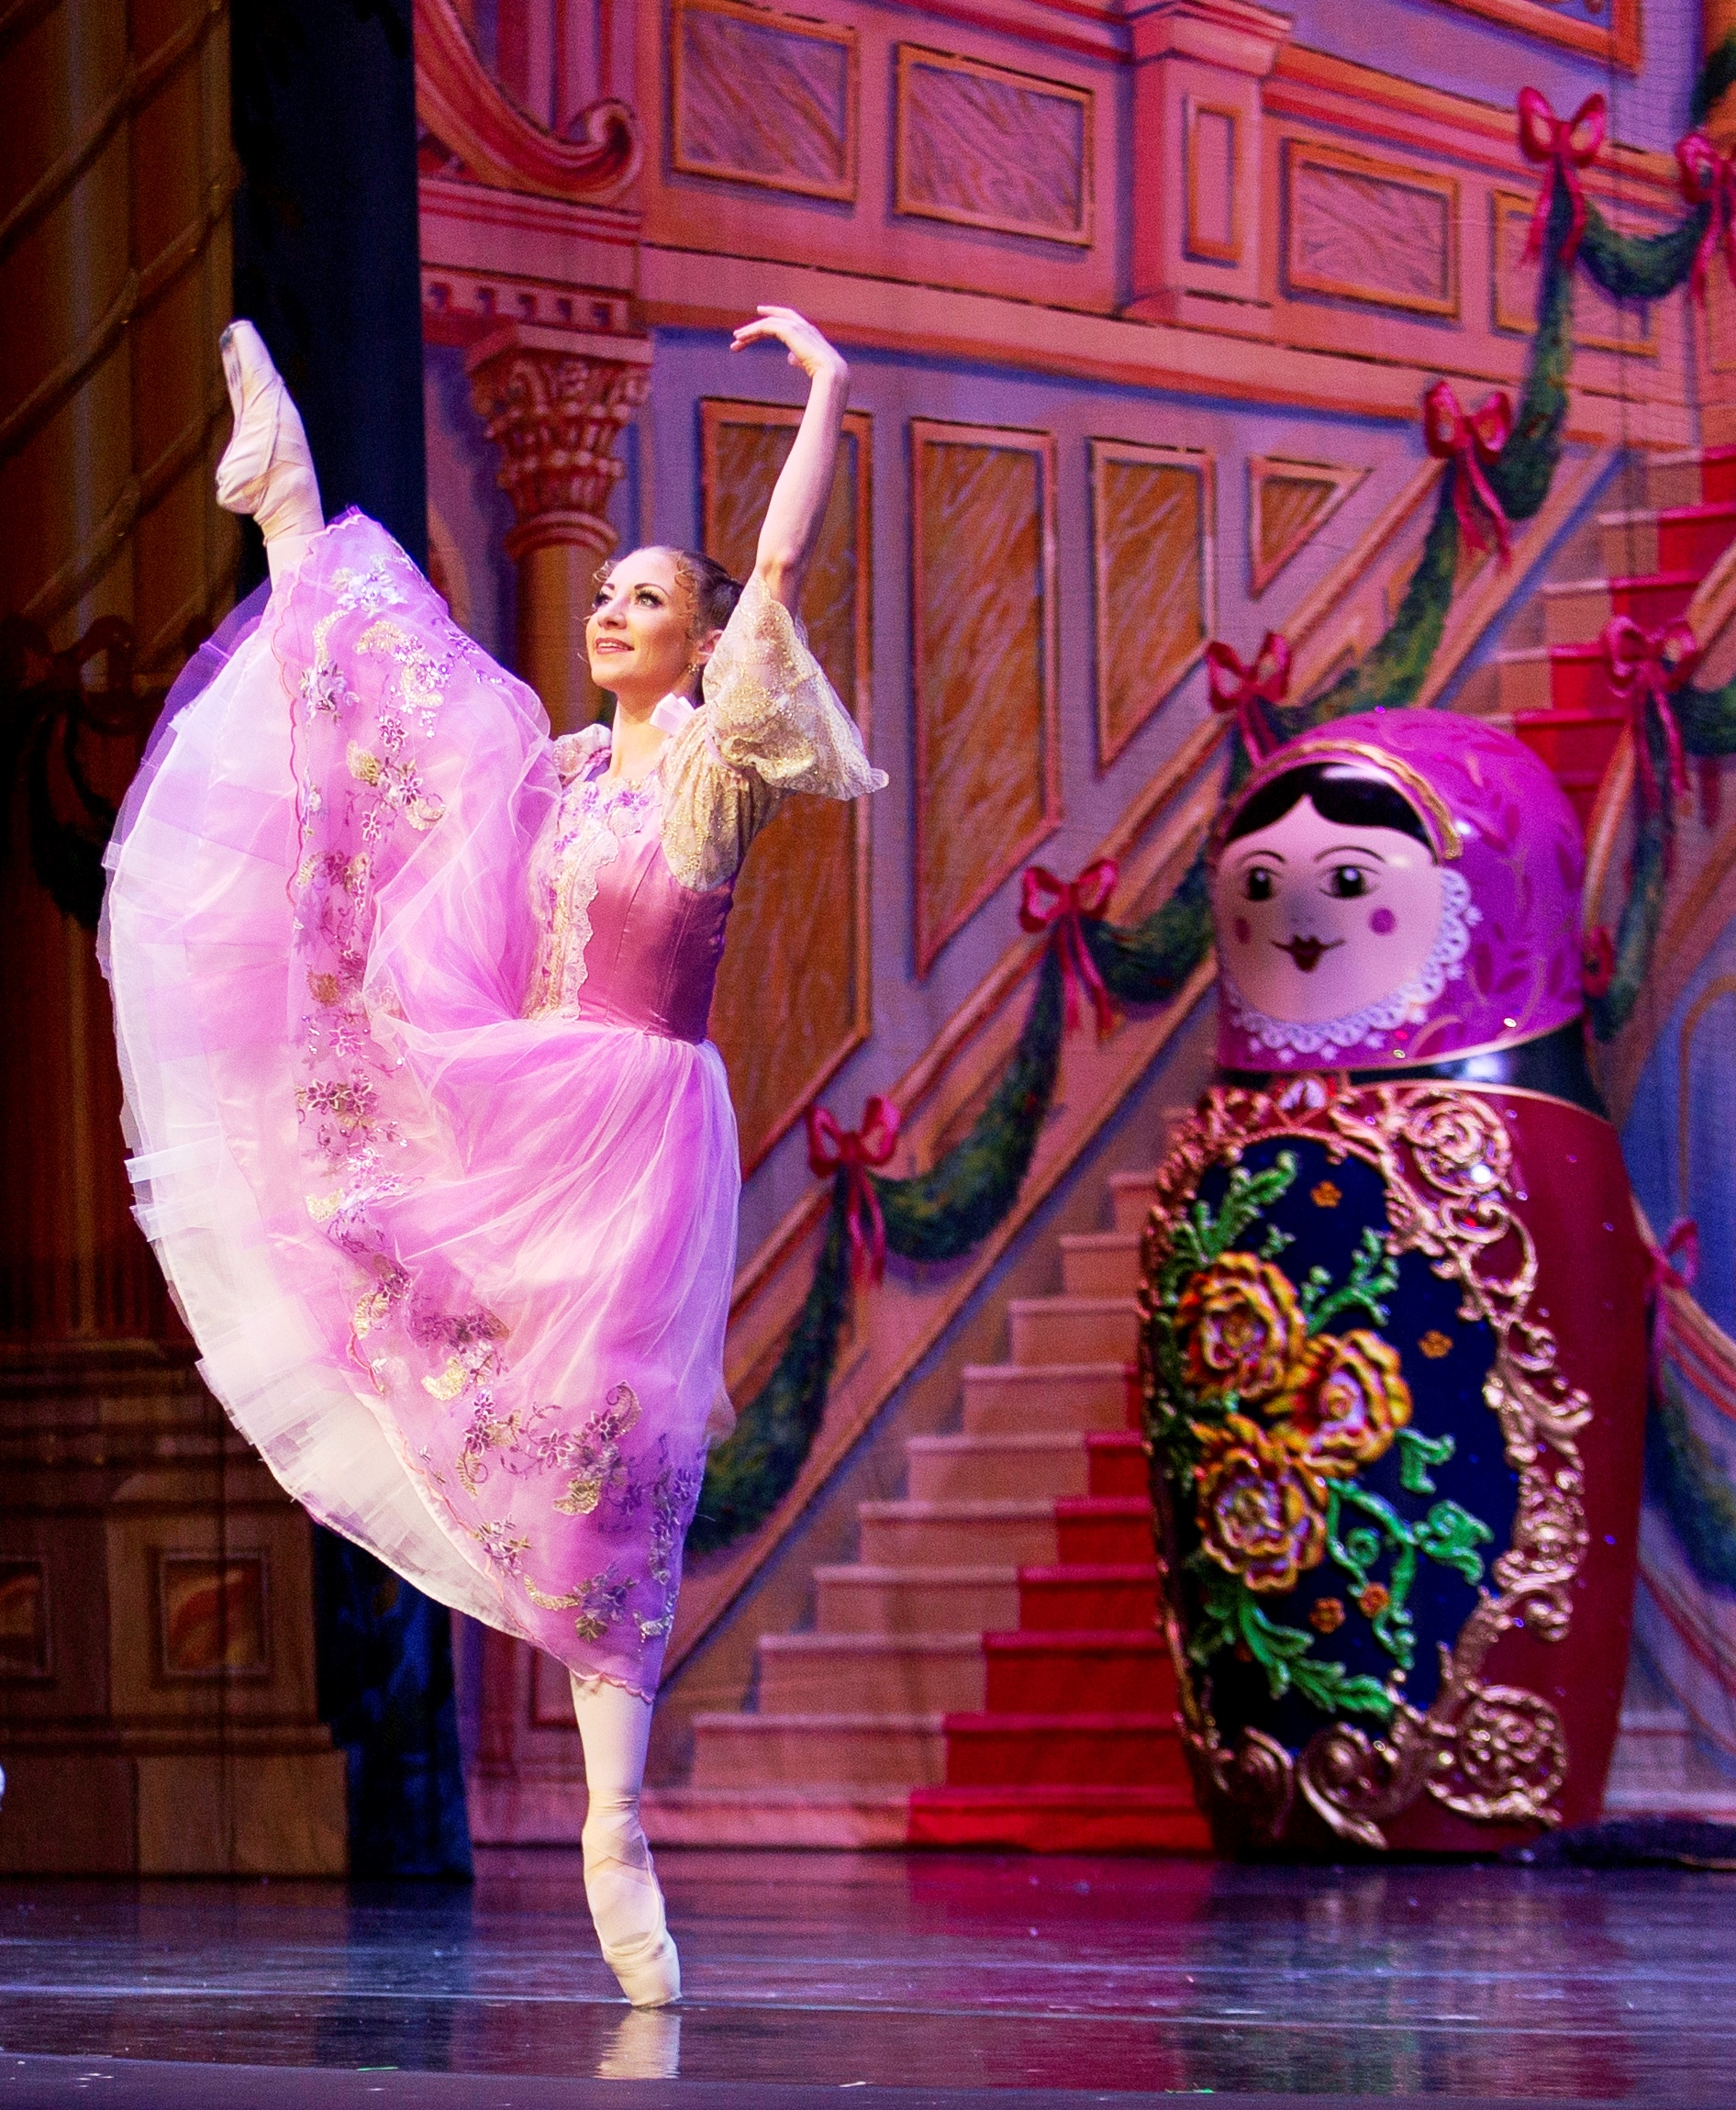 5. Moscow Ballet's Masha in high arabesque and oversized Nesting Doll